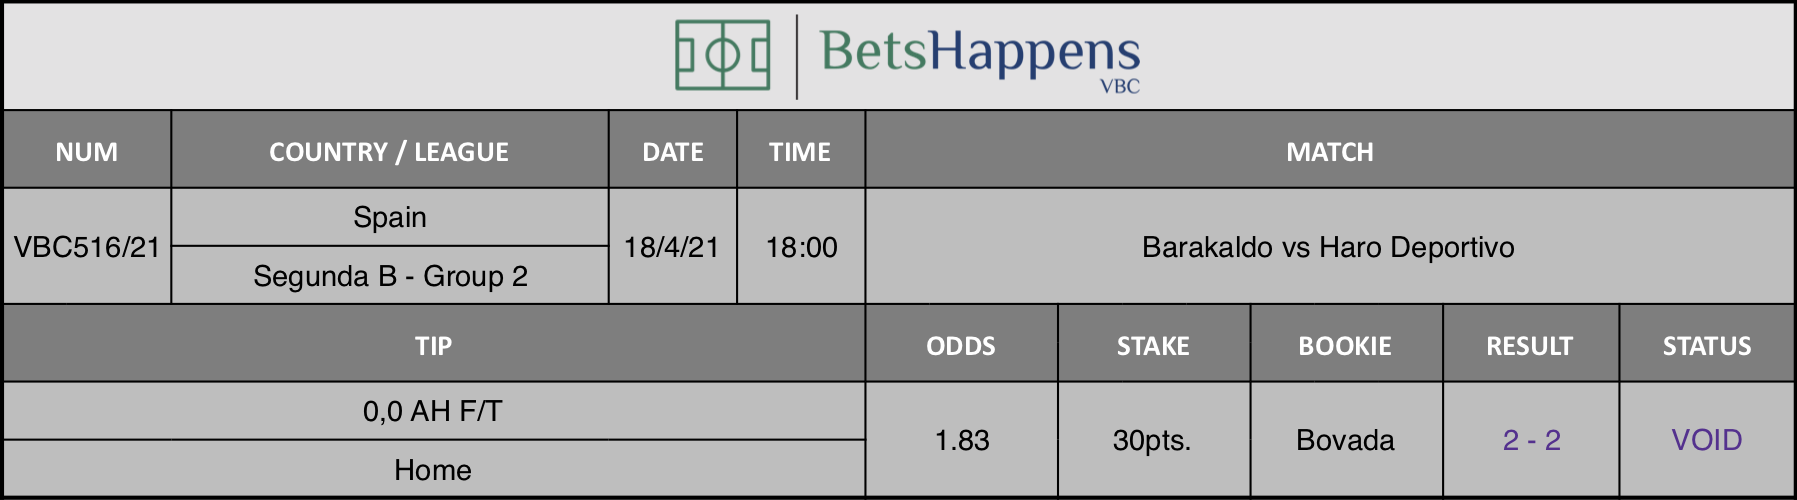 Results of our tip for the Barakaldo vs Haro Deportivo match where 0,0 AH F/T  Home is recommended.